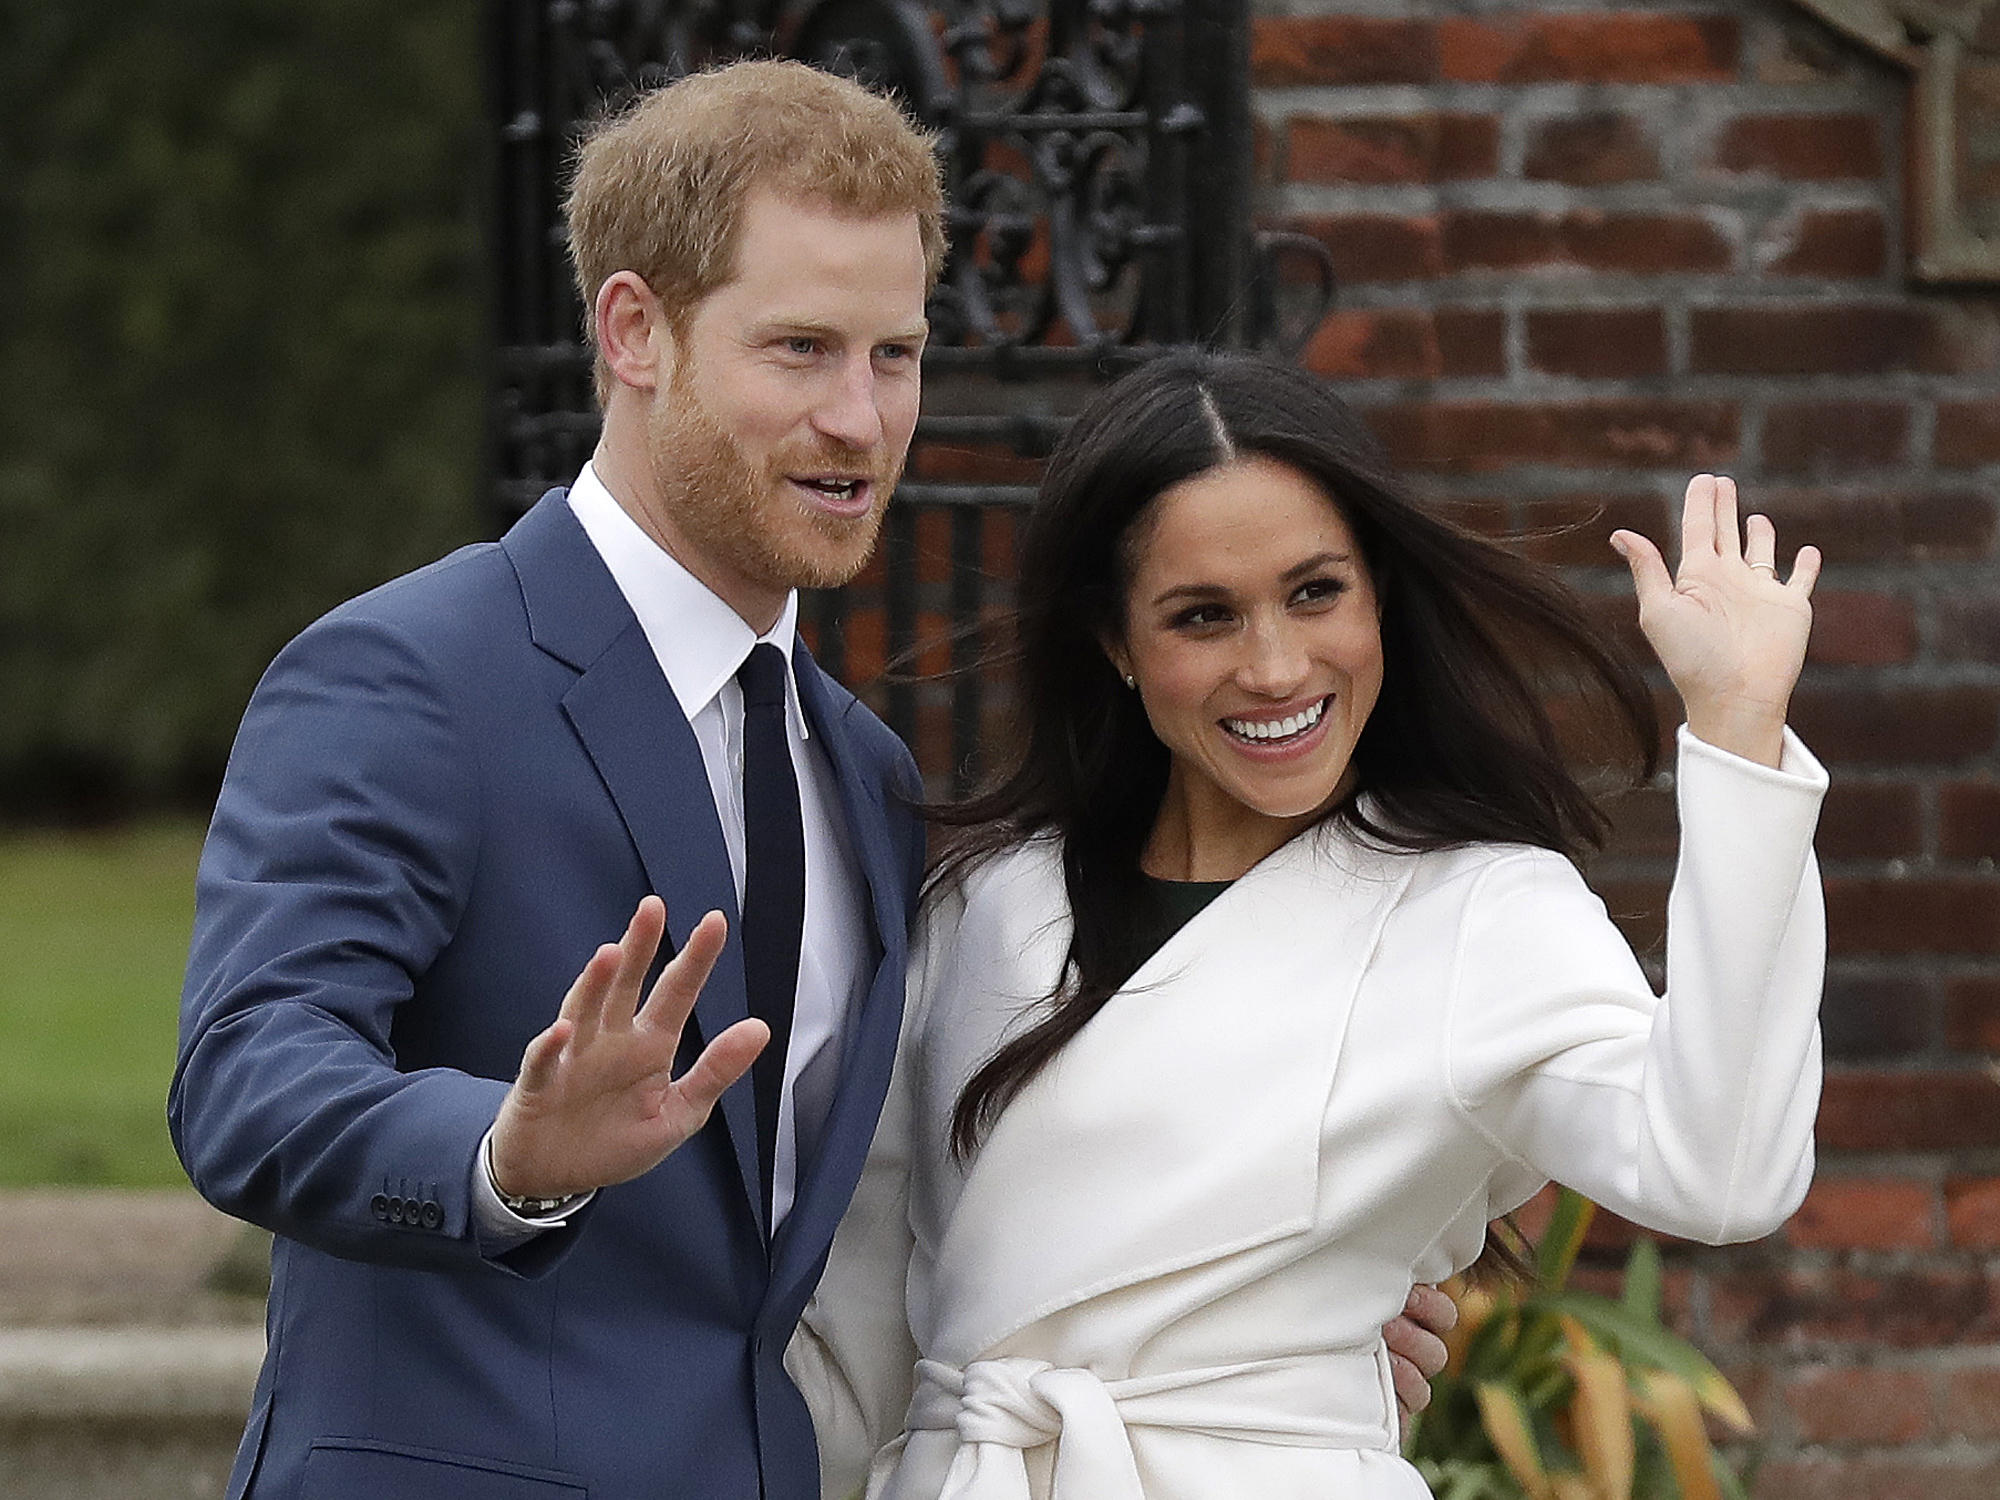 Prince Harry, Meghan Markle will marry in May at Windsor Castle